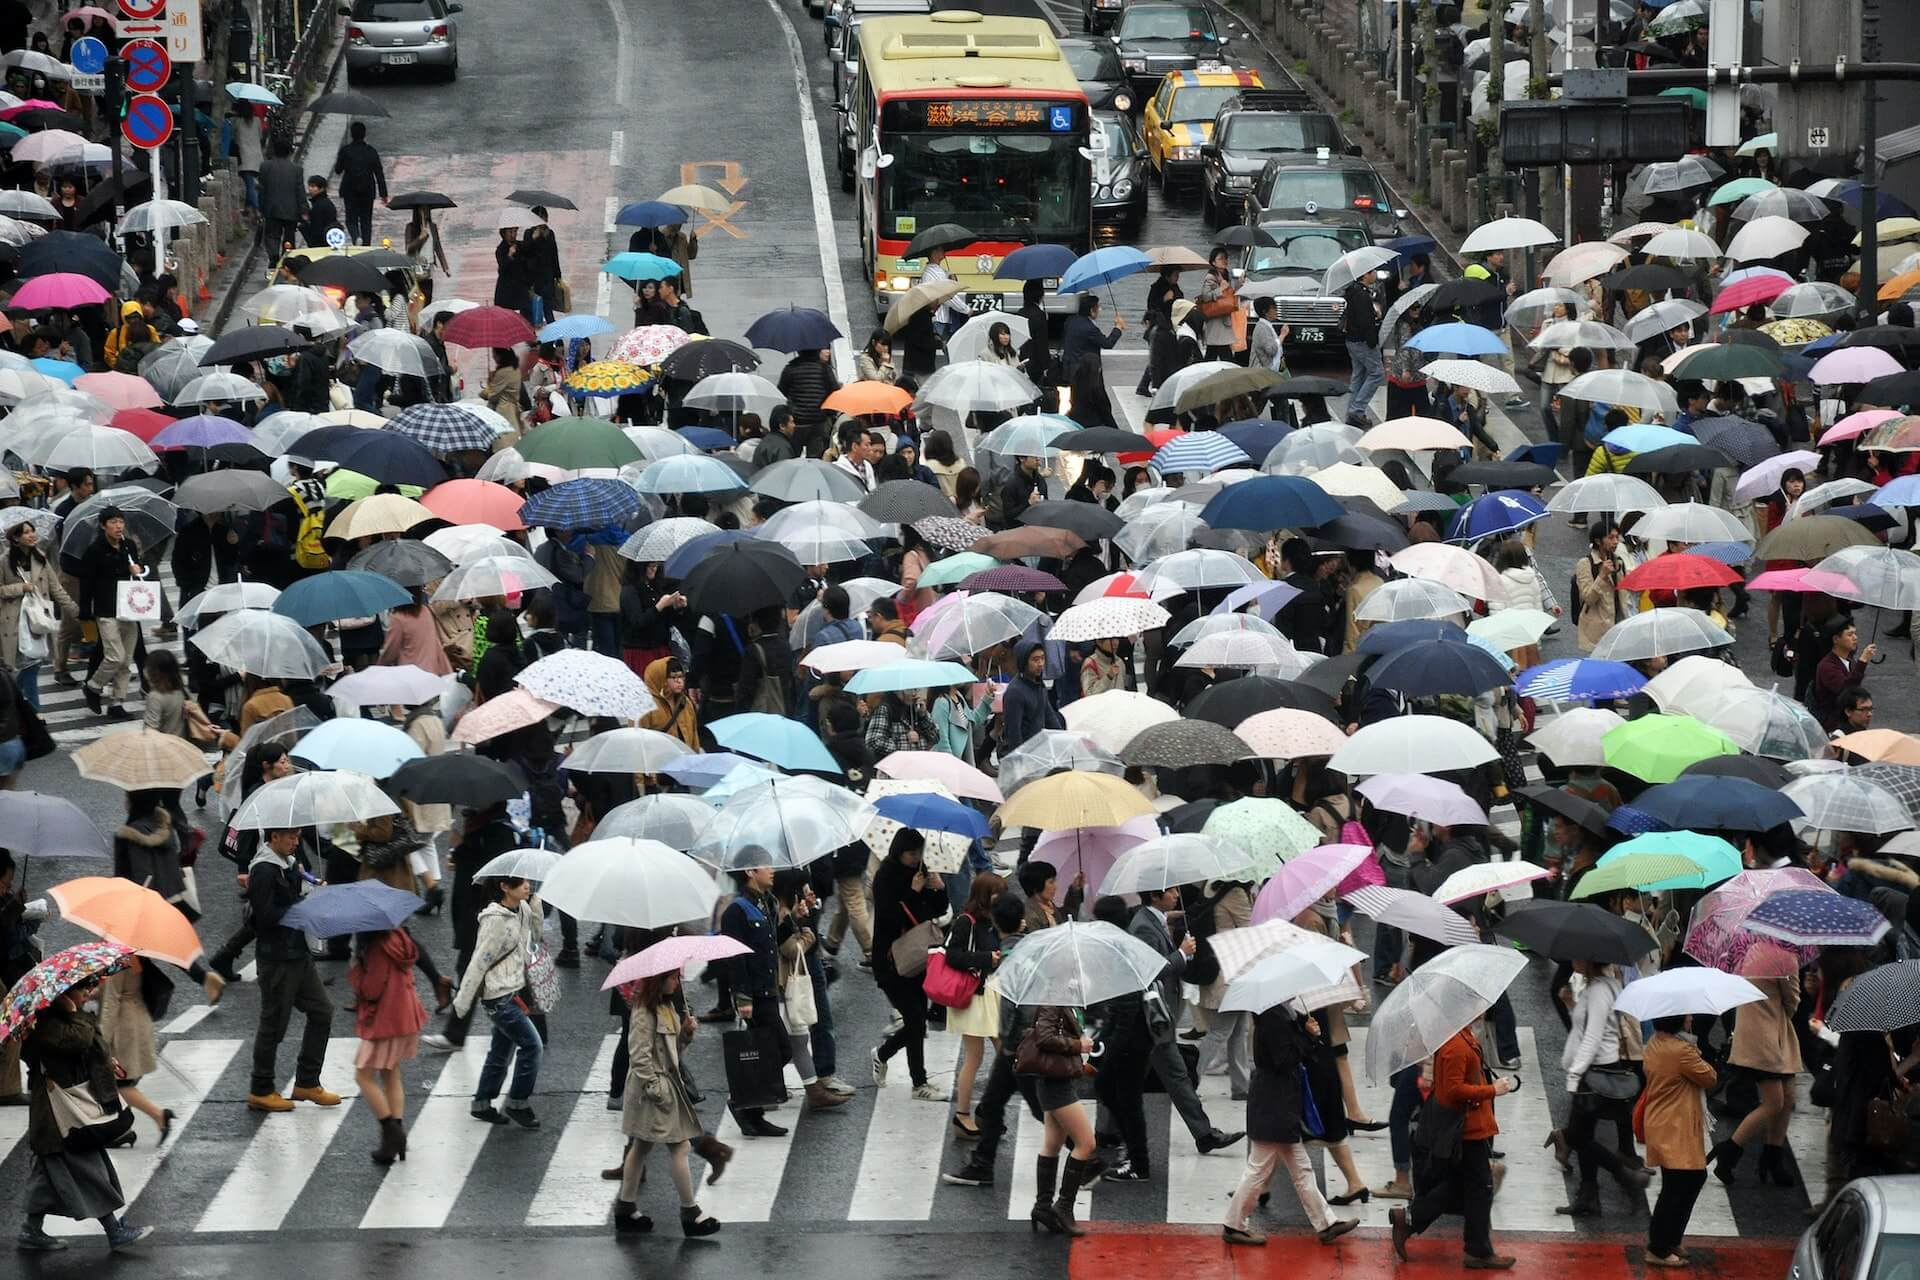 crowd of people with umbrellas crossing road